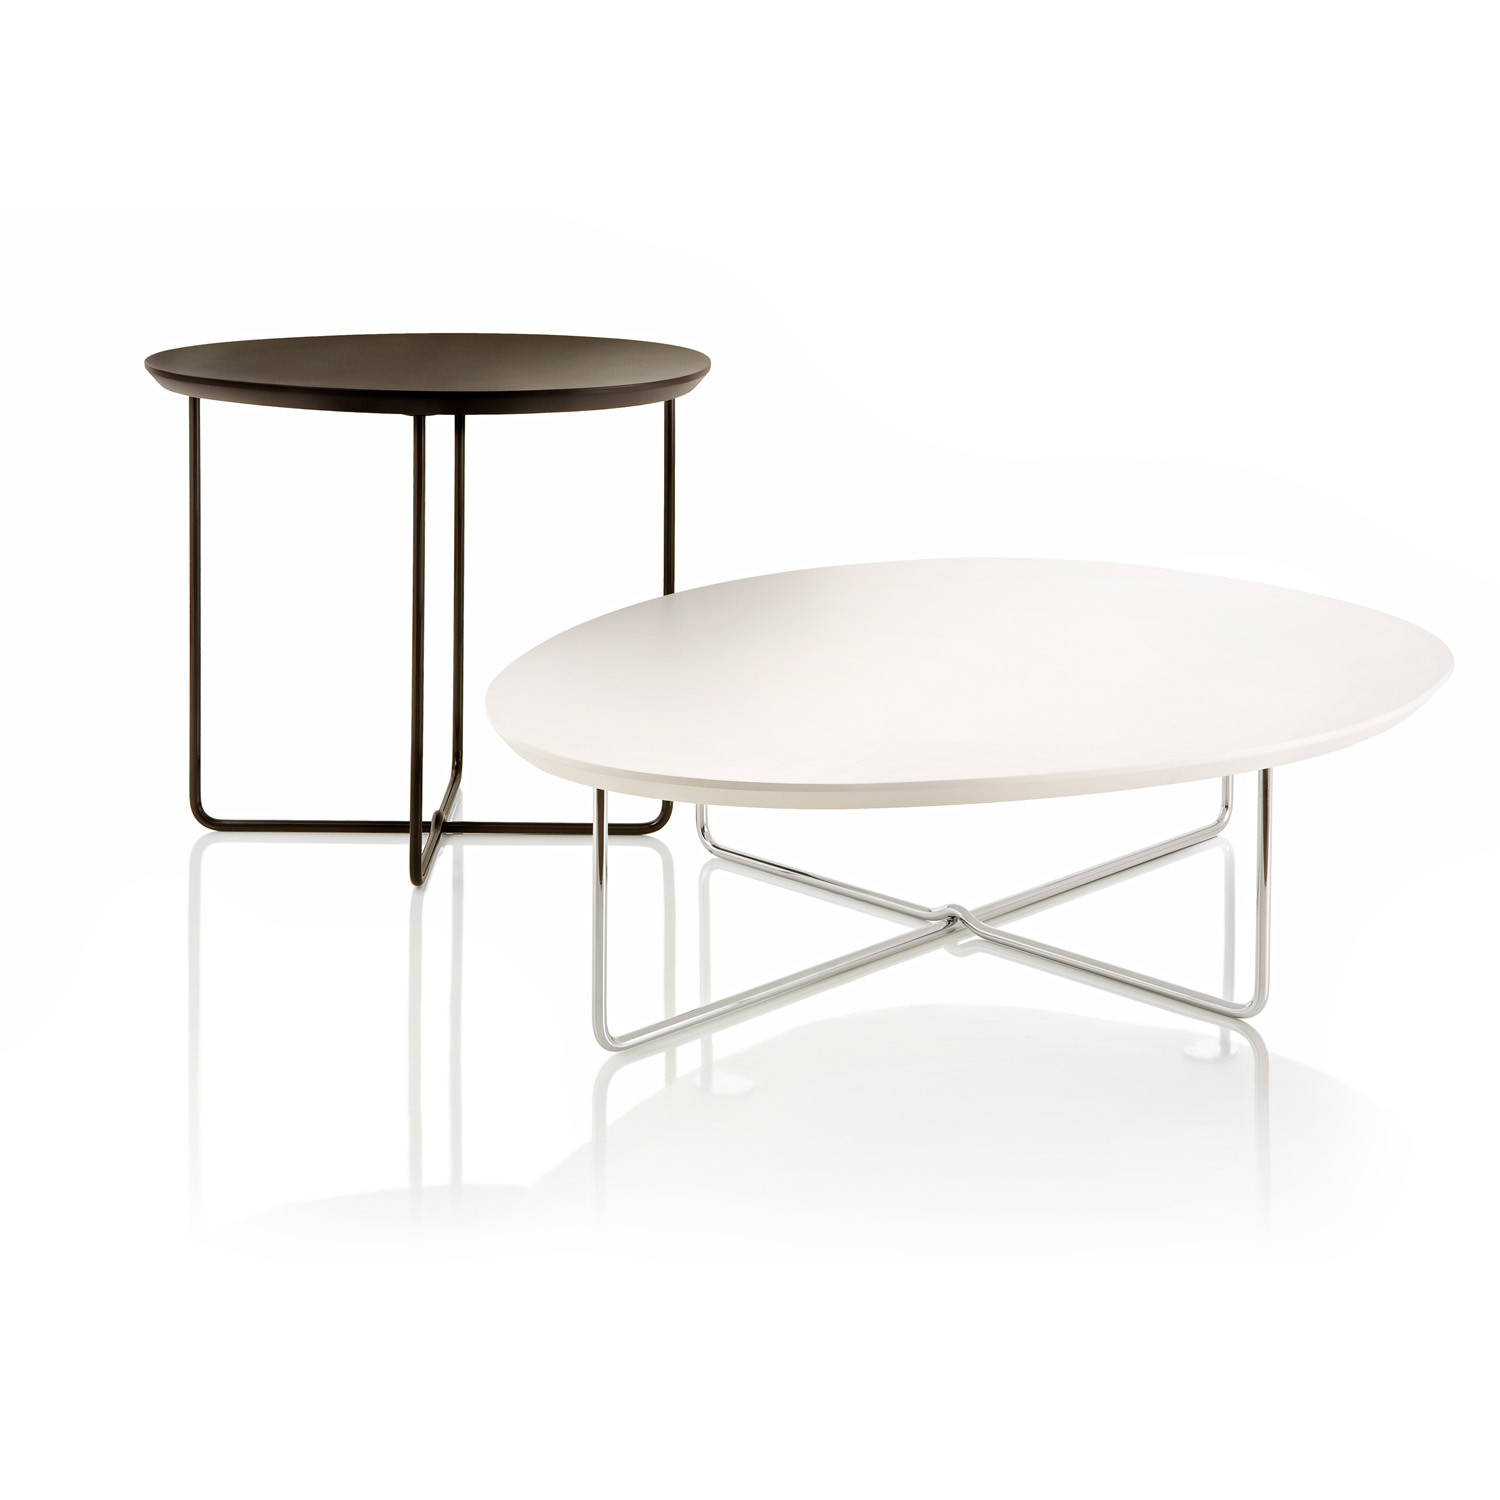 Bonnie and Clyde Tables Stylish Coffee Tables